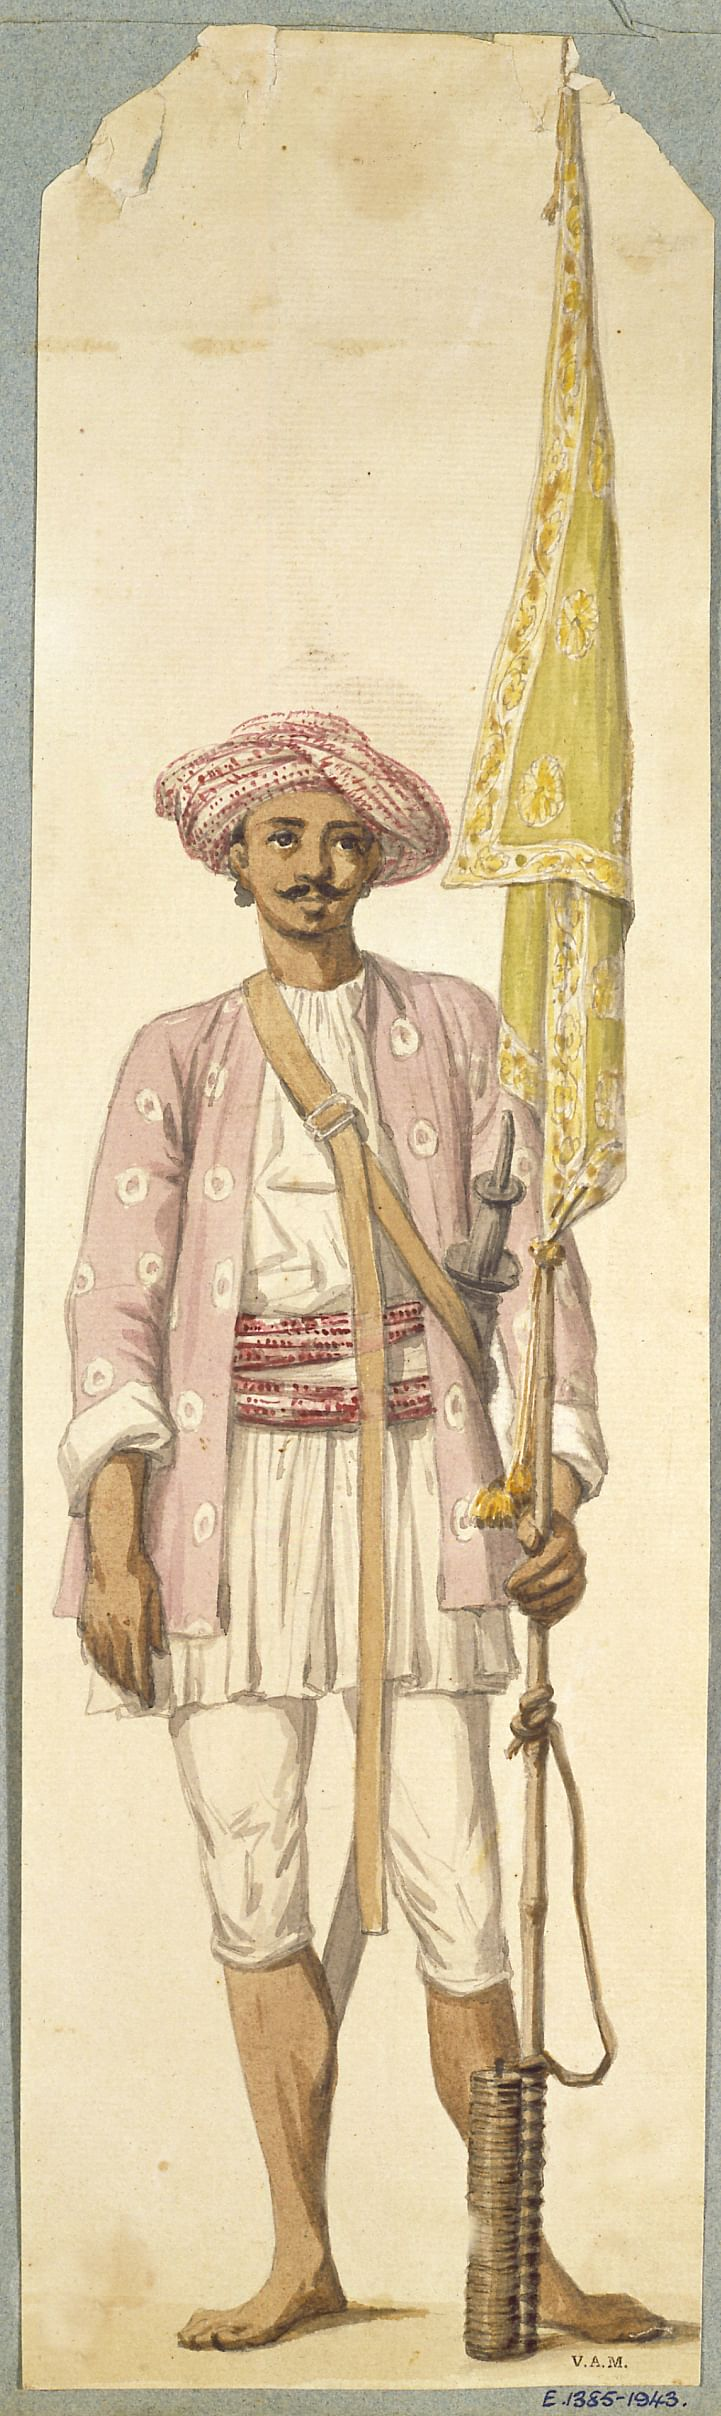 A soldier of Tipu Sultan's army, using his rocket as a flagstaff